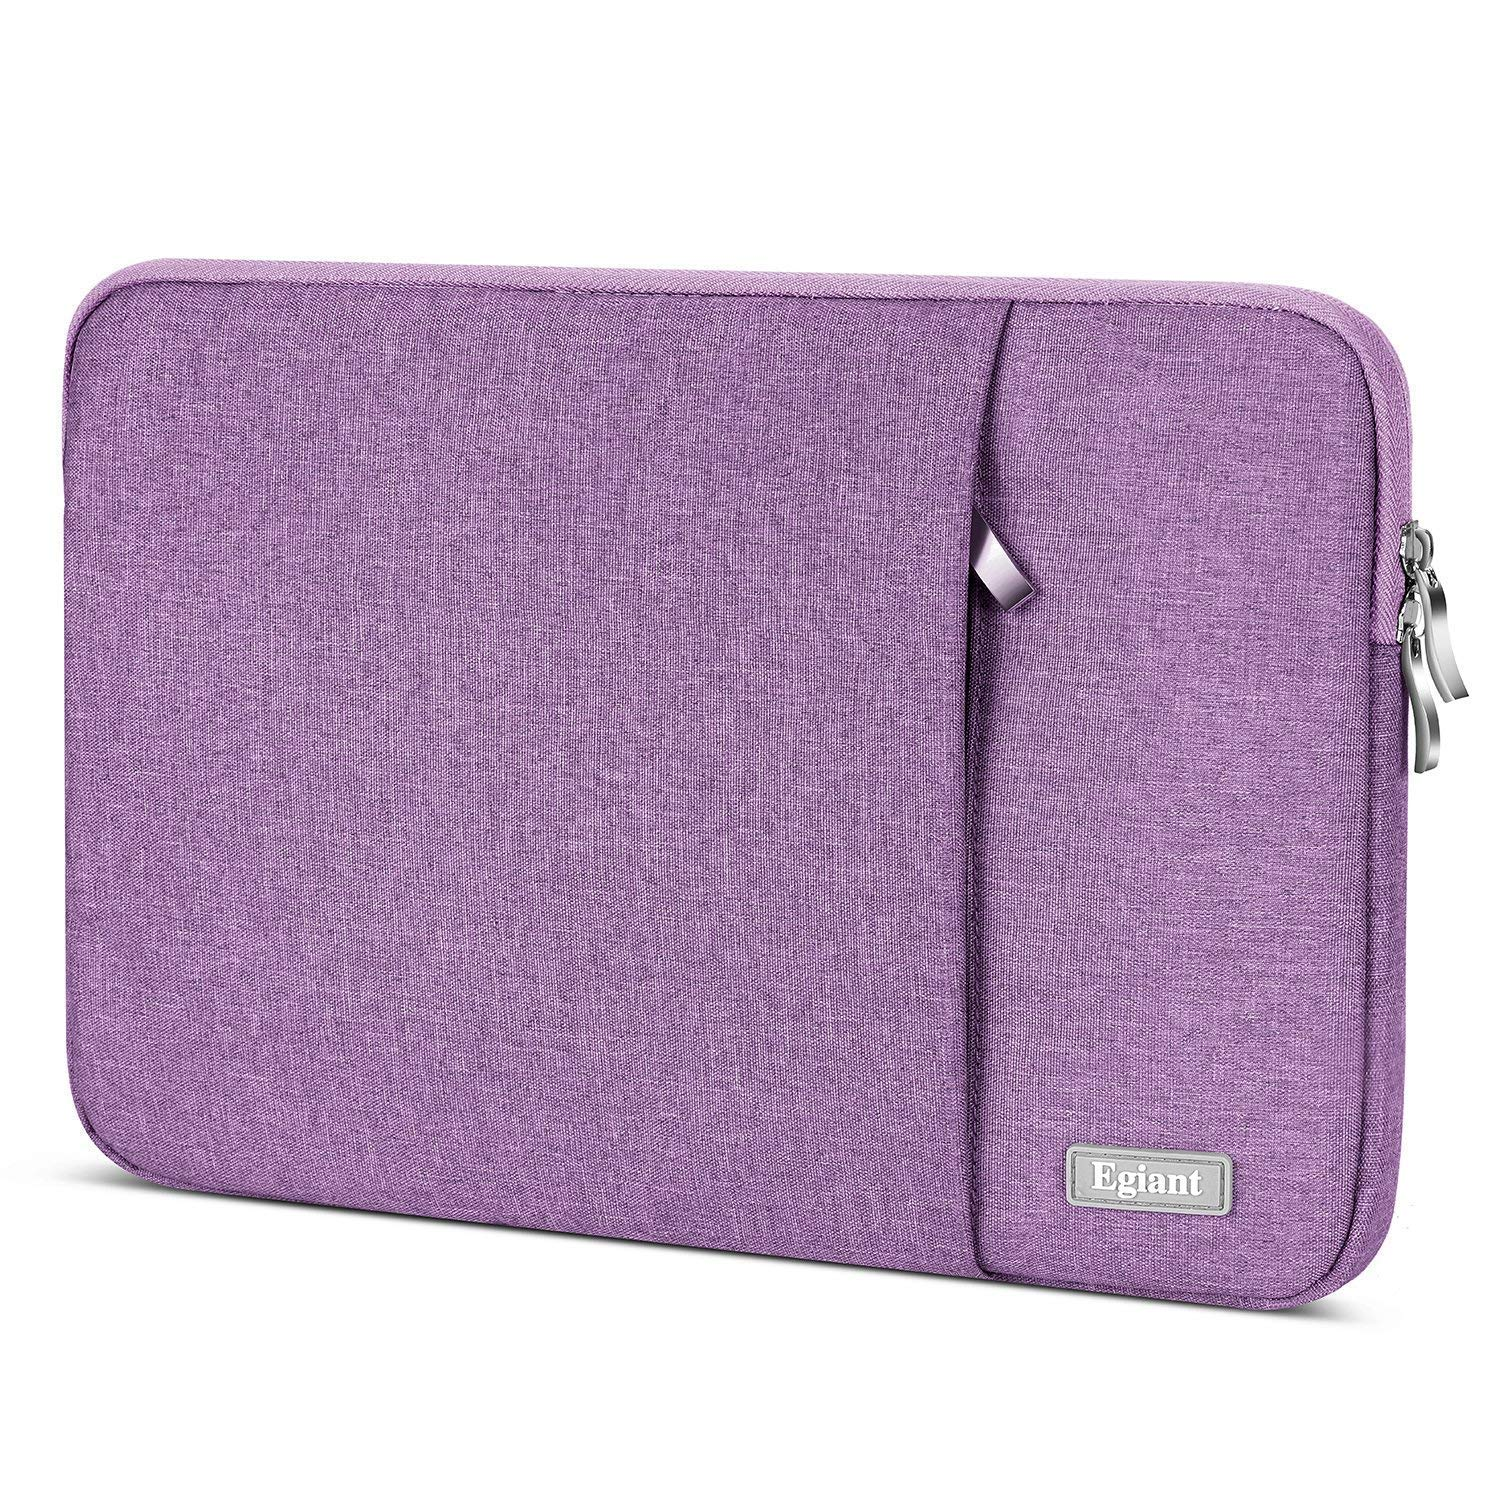 "Laptop Sleeve 15.6 inch,Egiant Water Repellent Protective Fabric Notebook Bag Case Compatible F555LA/MB168B/X551|Aspire E15|Chromebook 15|Inspiron 15.6|15.6"" Pavilion,Computer Carrying Case-Purple"